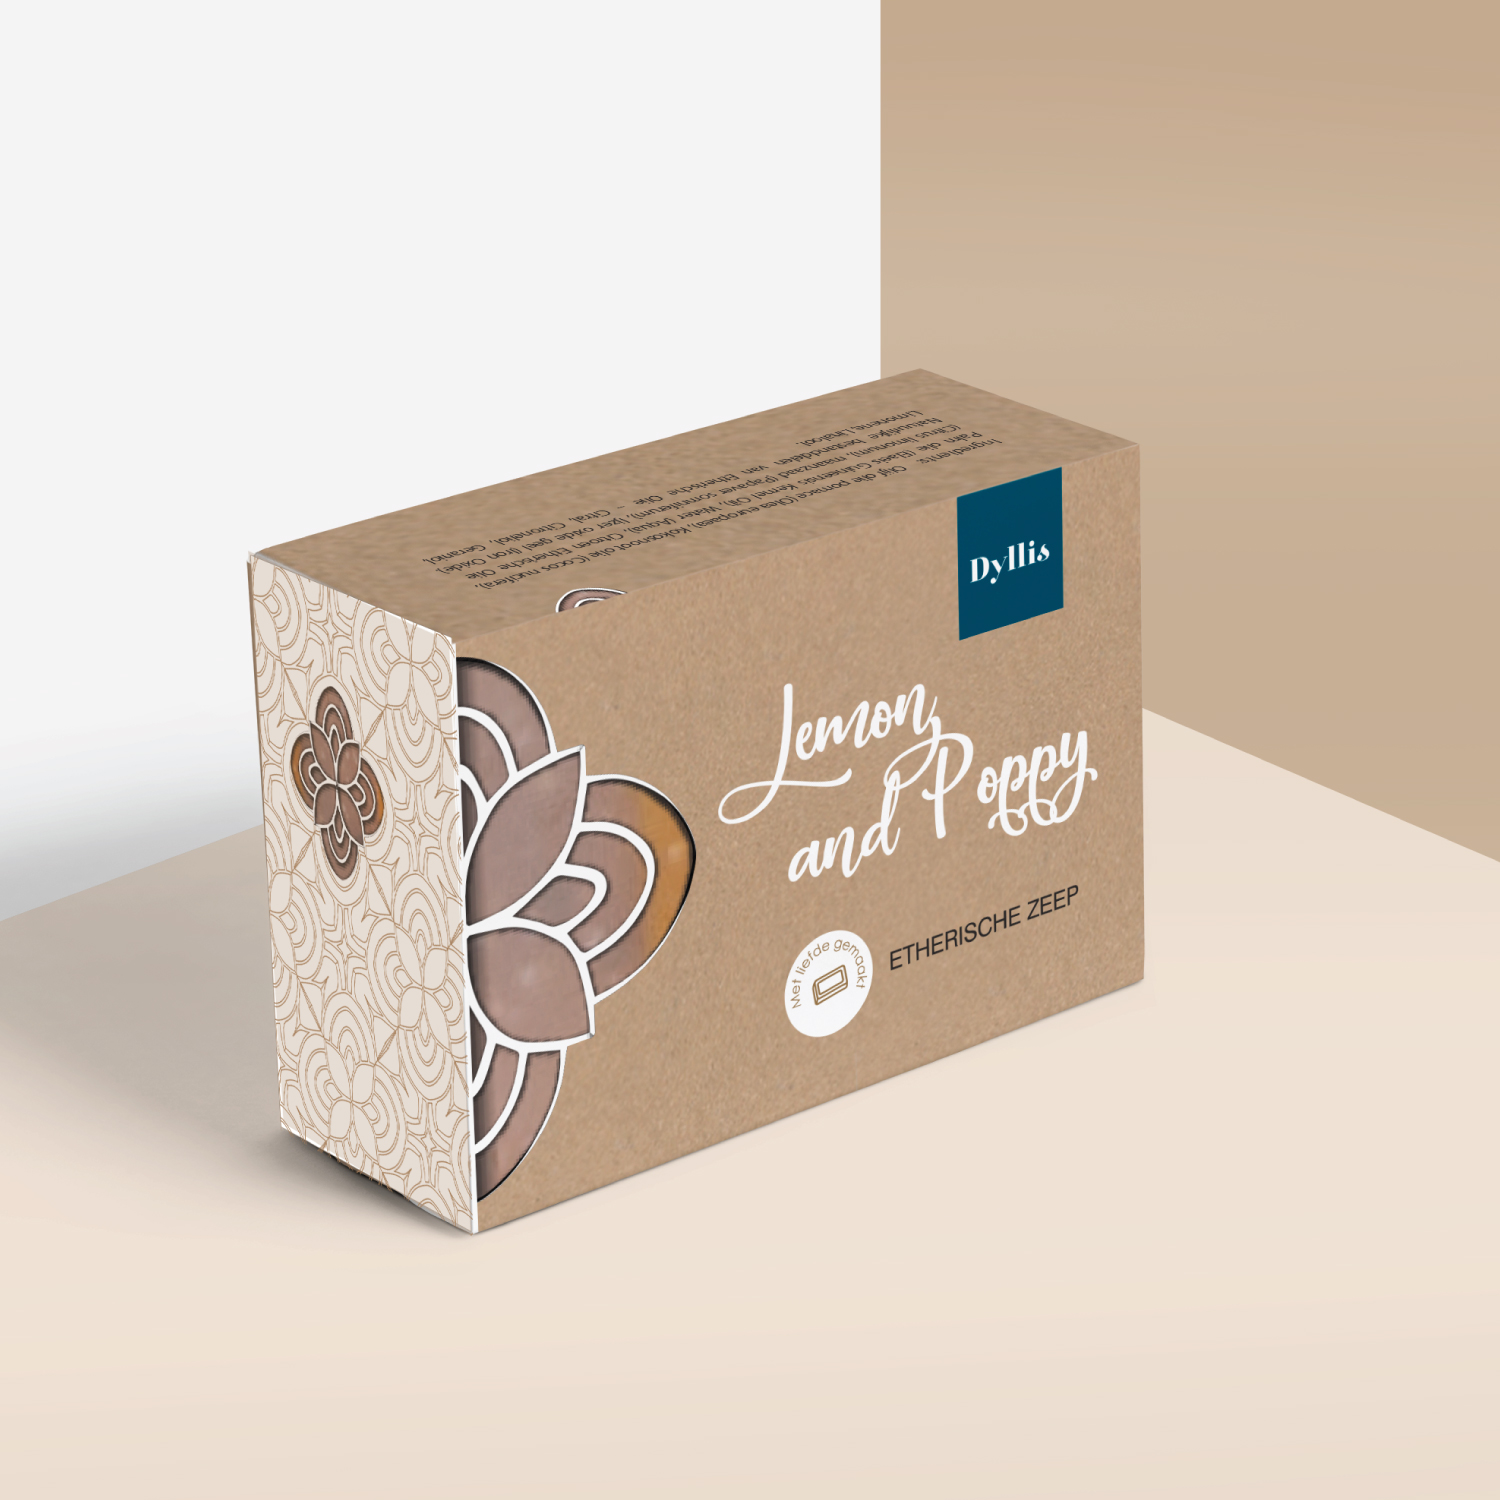 Upmarket, Elegant Packaging Design for a Company by AnaVul